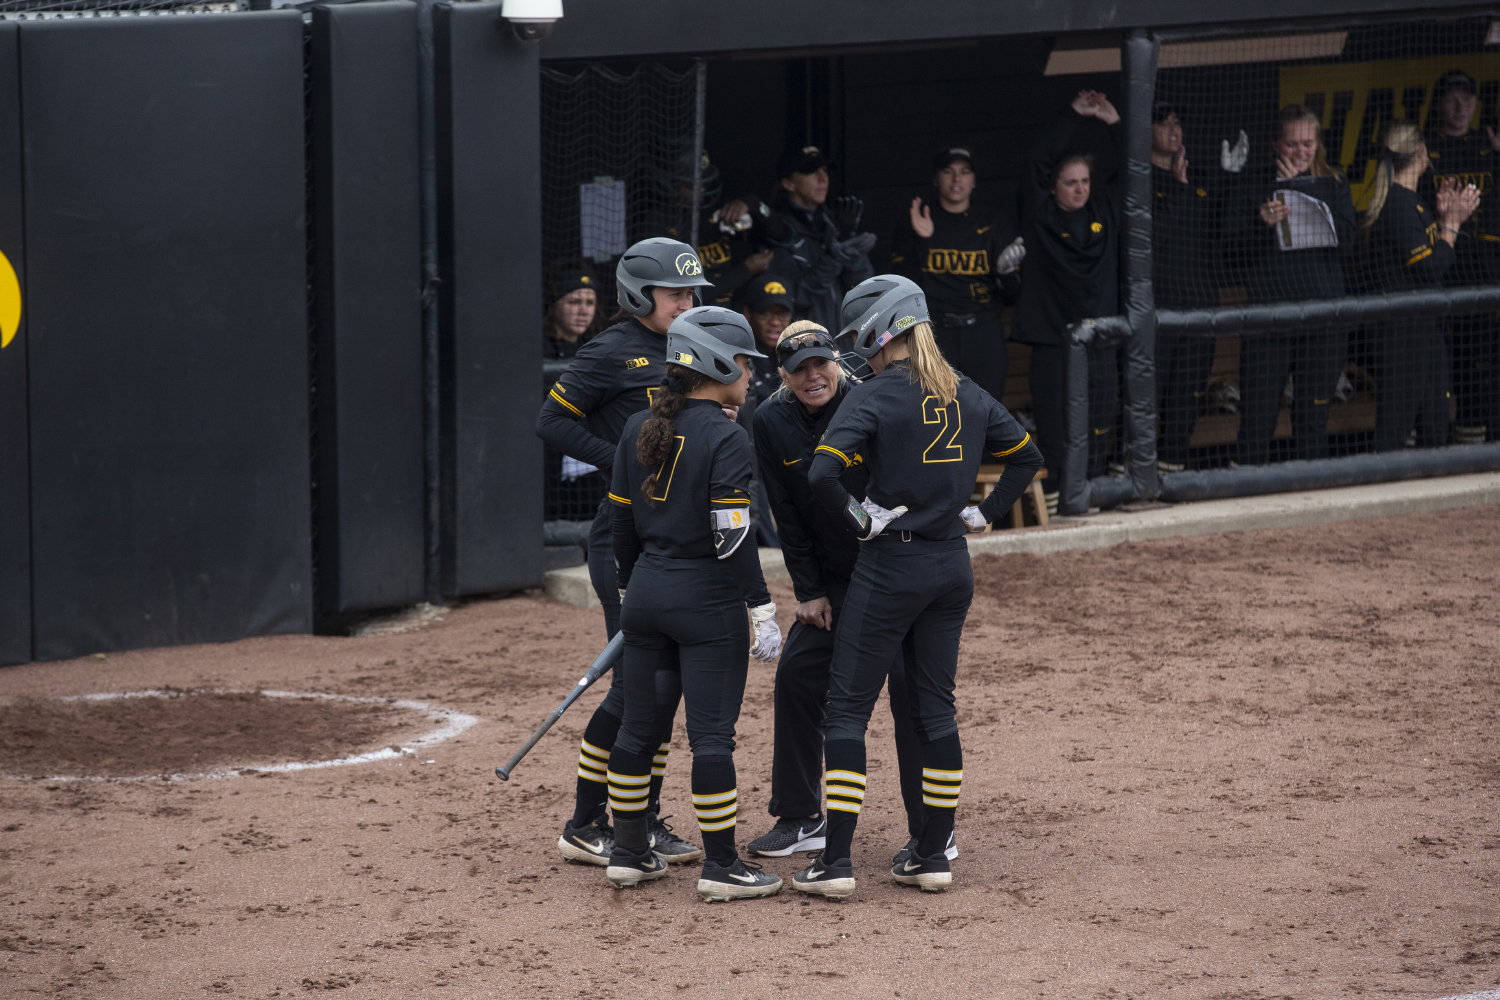 Head Coach Renee Gillispie talks with Aralee Bogar (2), Lea Thompson (7) and Mallory Kilian during softball against Northwestern on Bob Pearl Field on March 30, 2019. The Wildcats defeated the Hawkeyes 6-2.